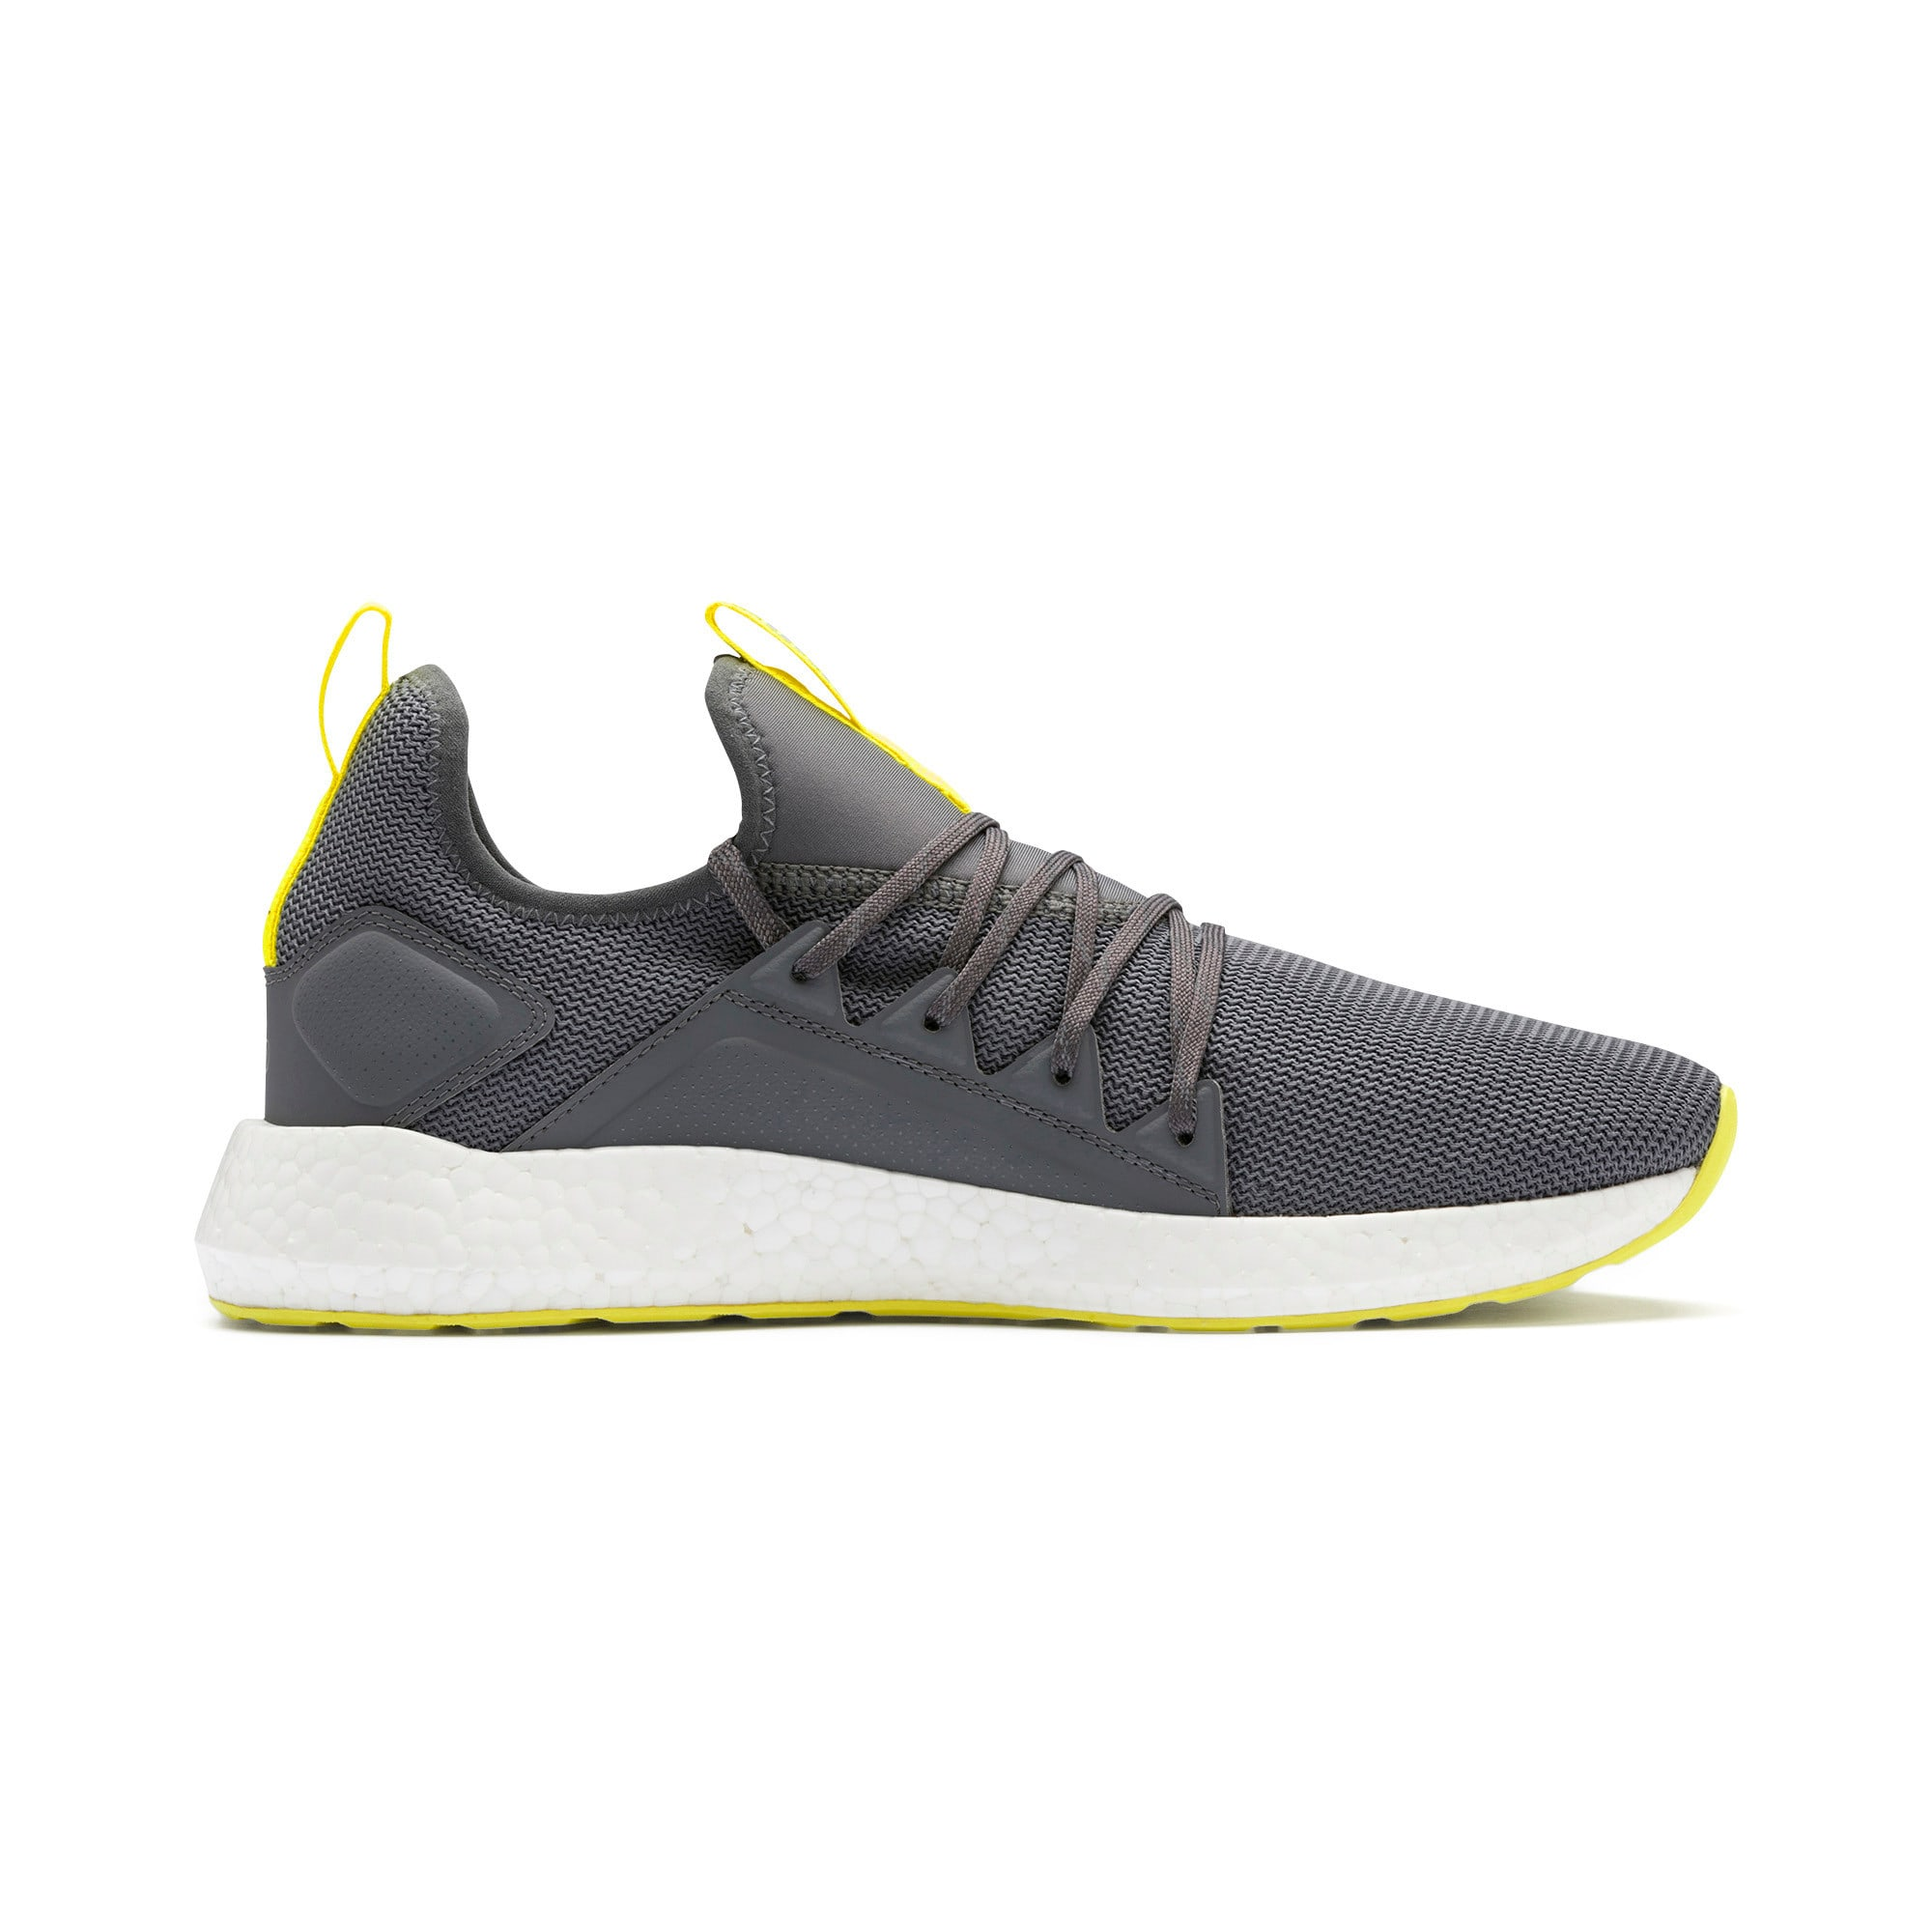 Thumbnail 6 of NRGY Neko Lights hardloopschoenen voor heren, CASTLEROCK-Yellow Alert, medium